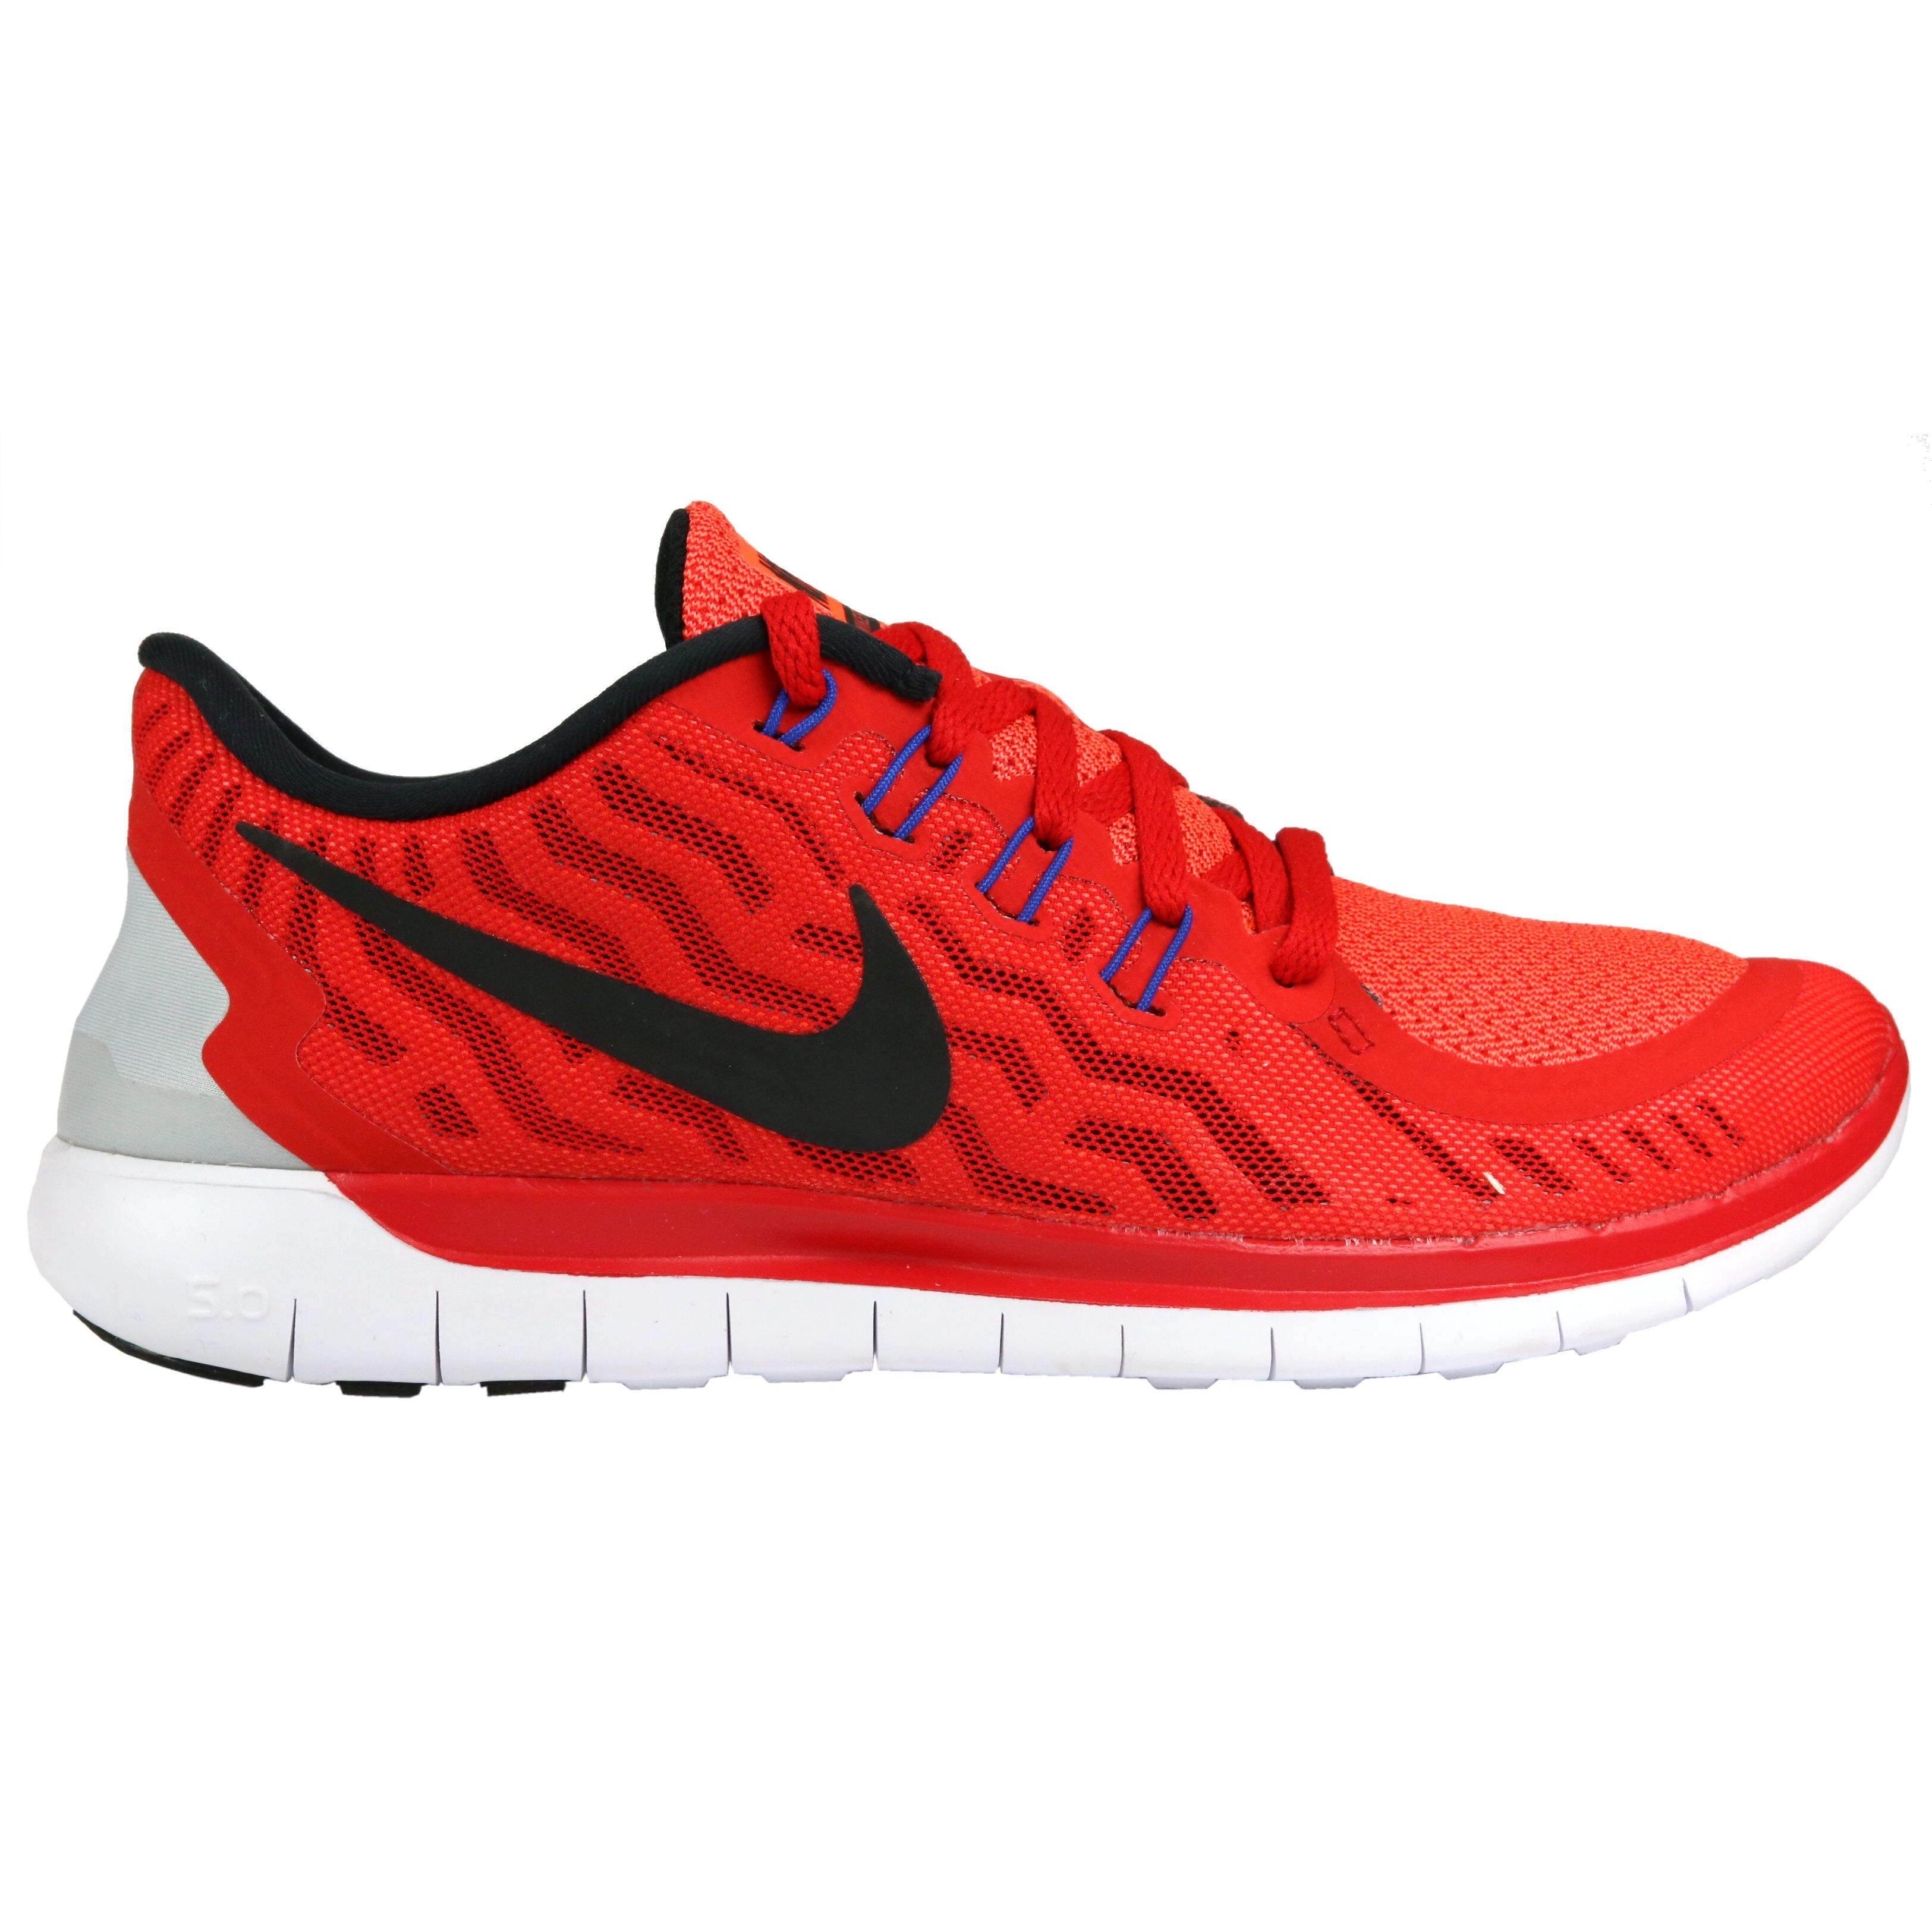 c82735283 Nike Roshe One X Yeezy 350 Patriots Under Armour | Portal for Tenders